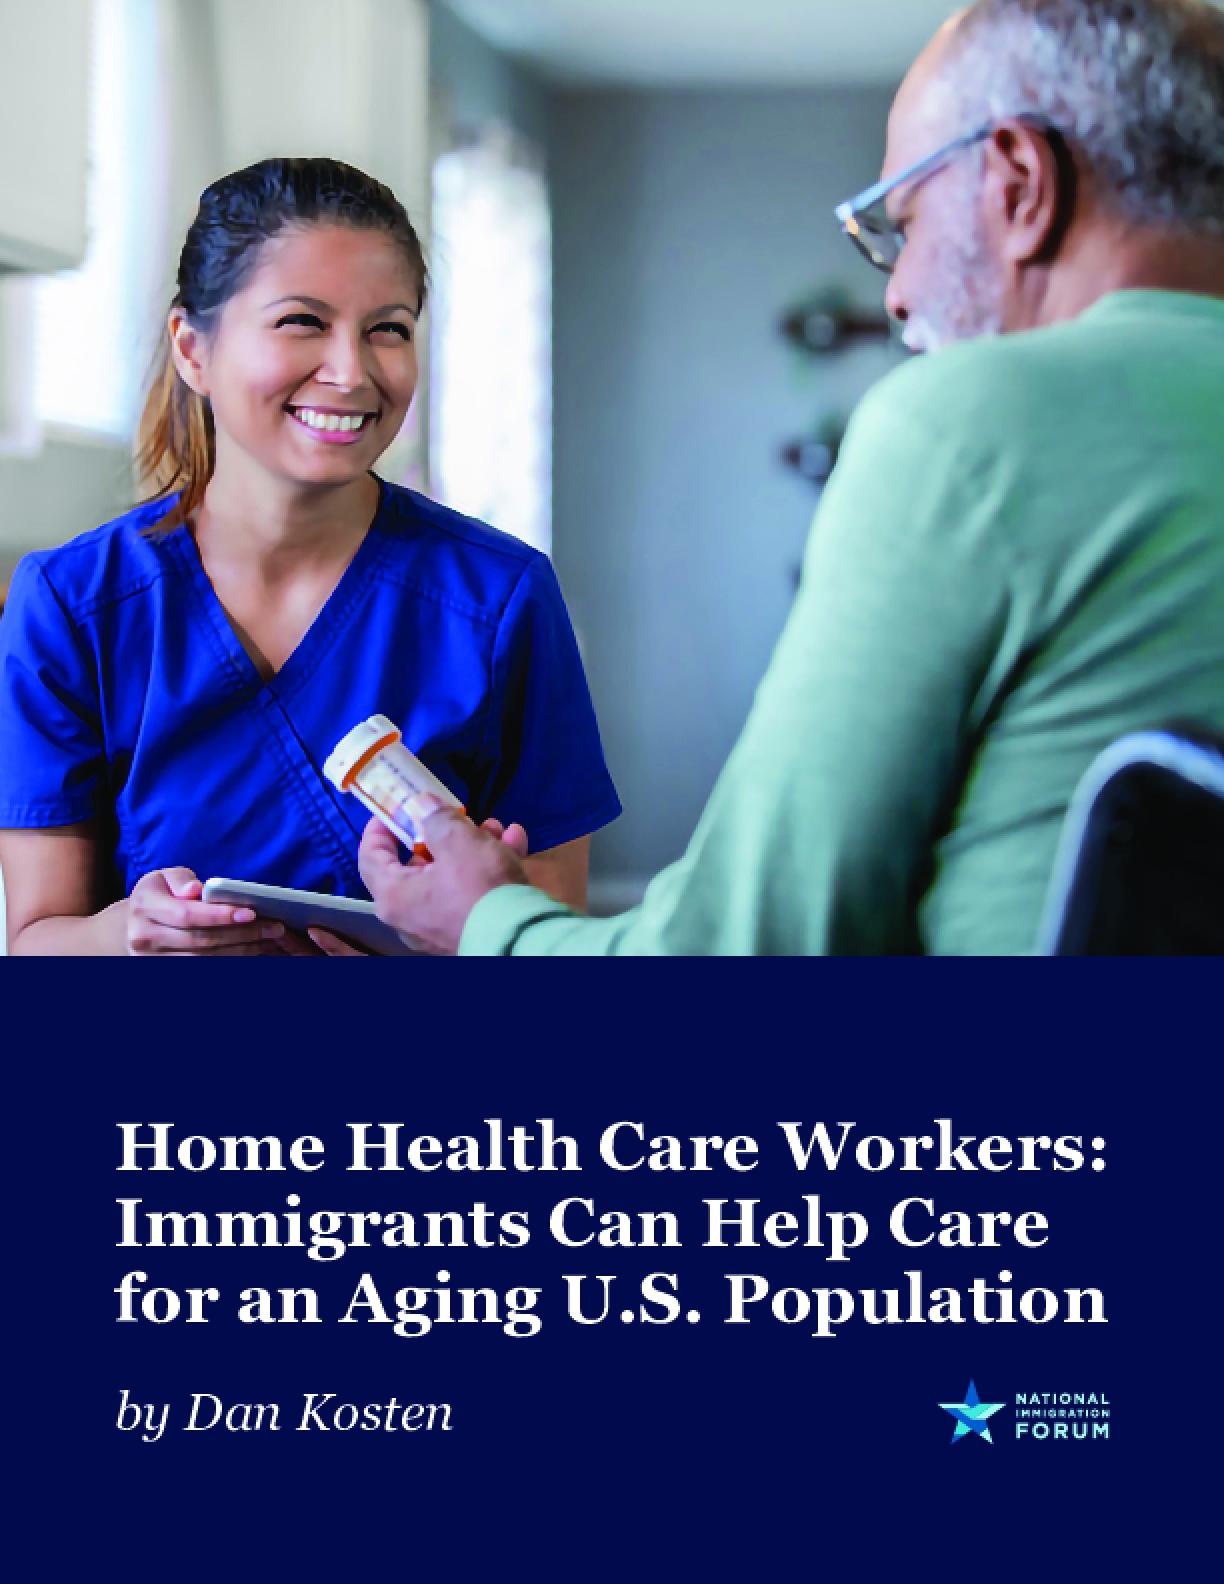 Home Health Care Workers: Immigrants Can Help Care for an Aging U.S. Population